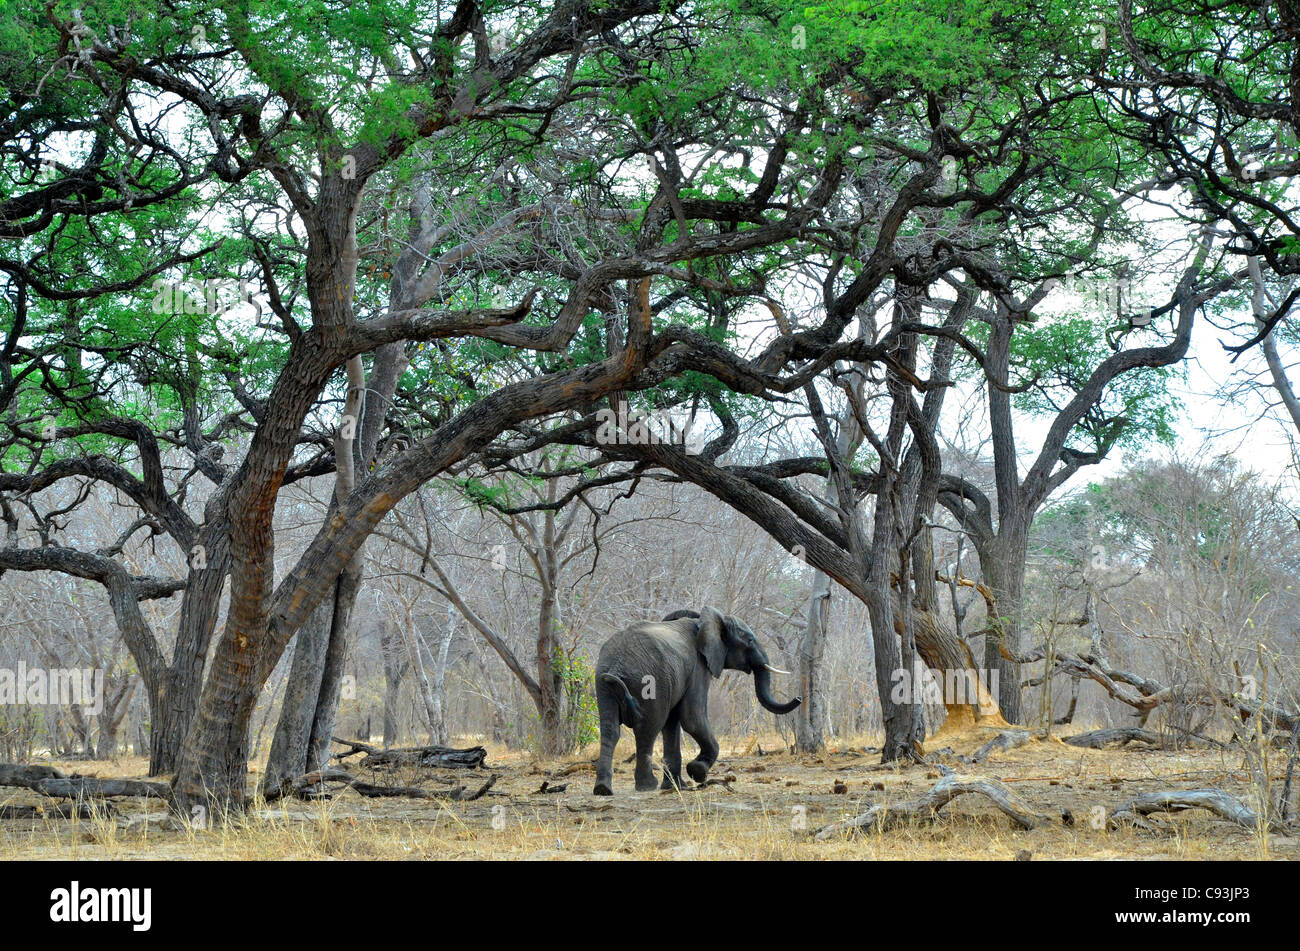 Zimbabwe is a small country boasting an incredible variety of landscapes and animals. - Stock Image